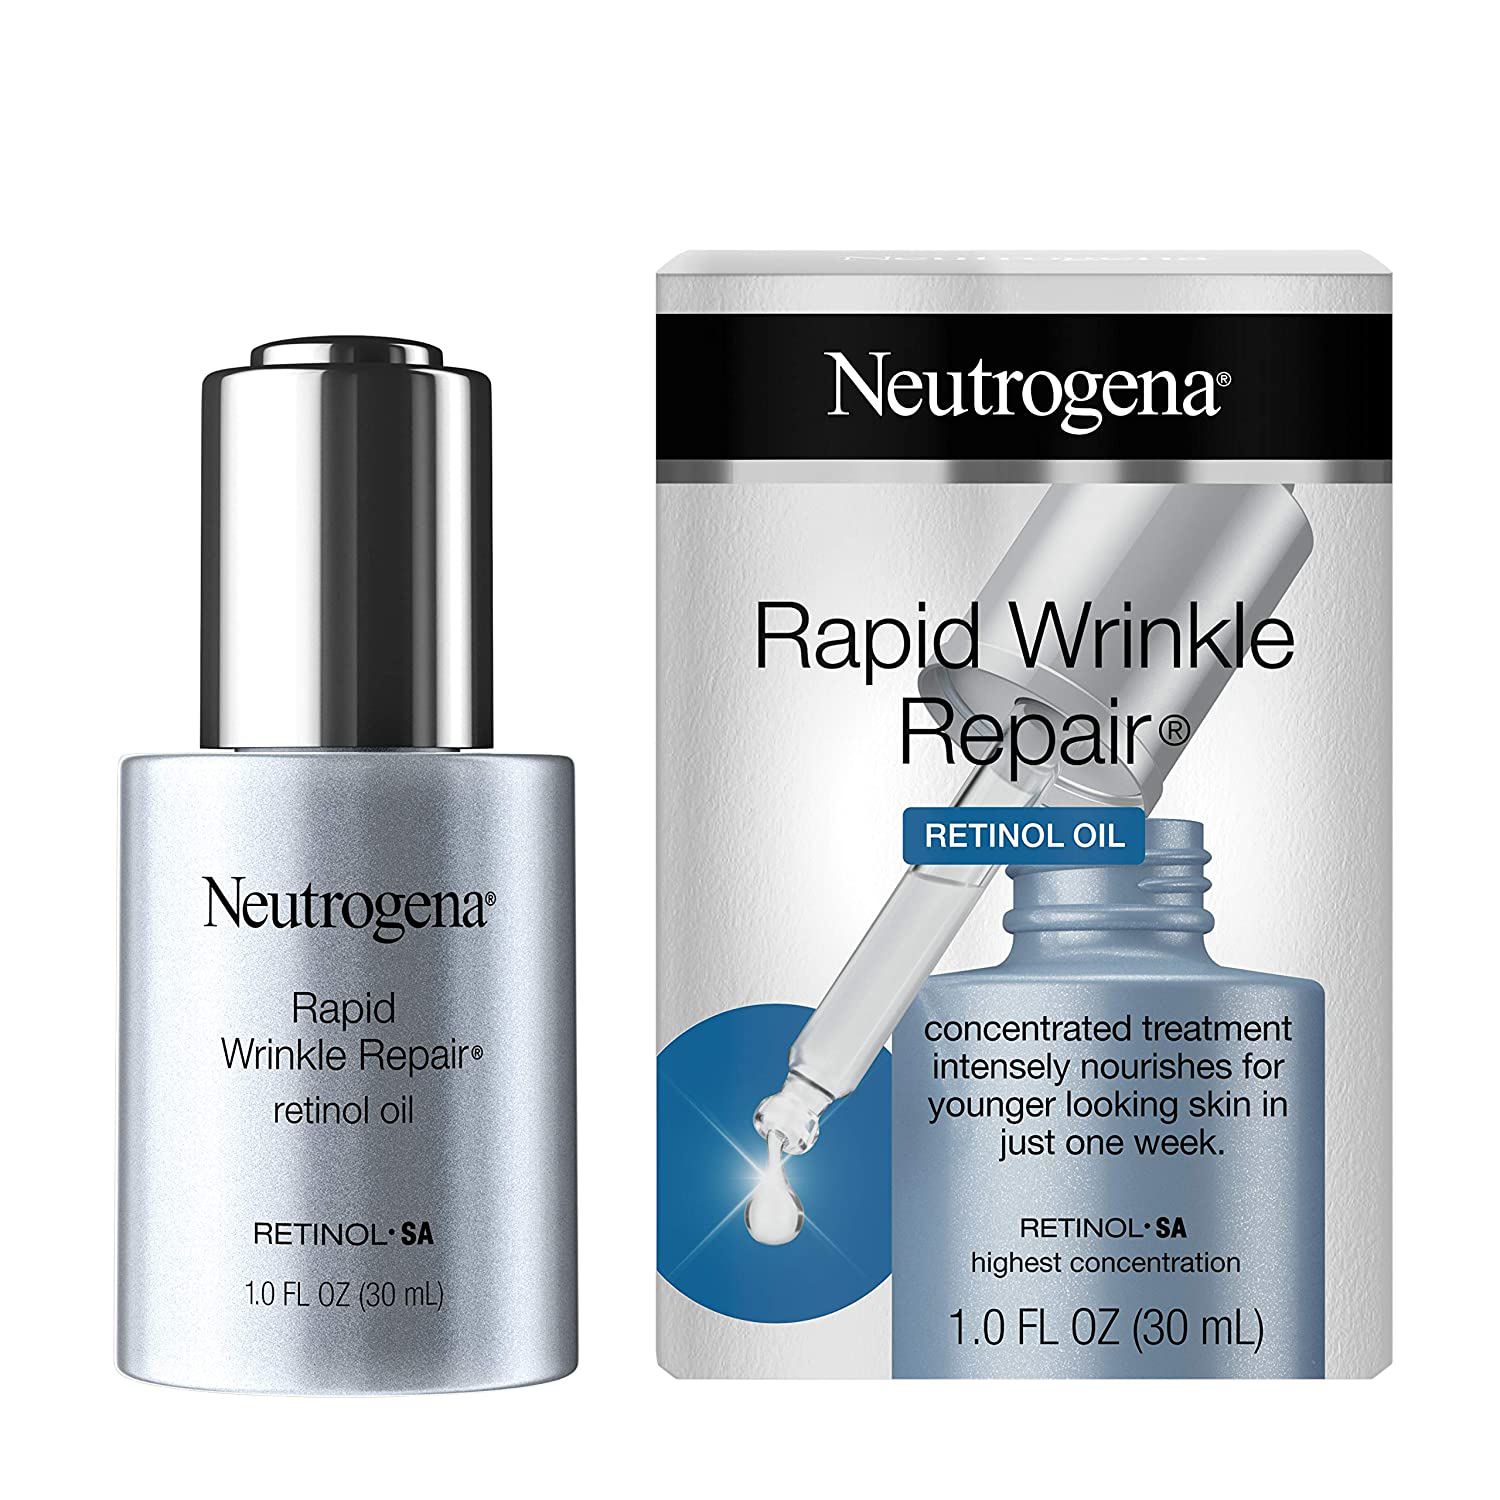 Neutrogena Rapid Wrinkle Repair Anti-Wrinkle Retinol Face Serum Oil